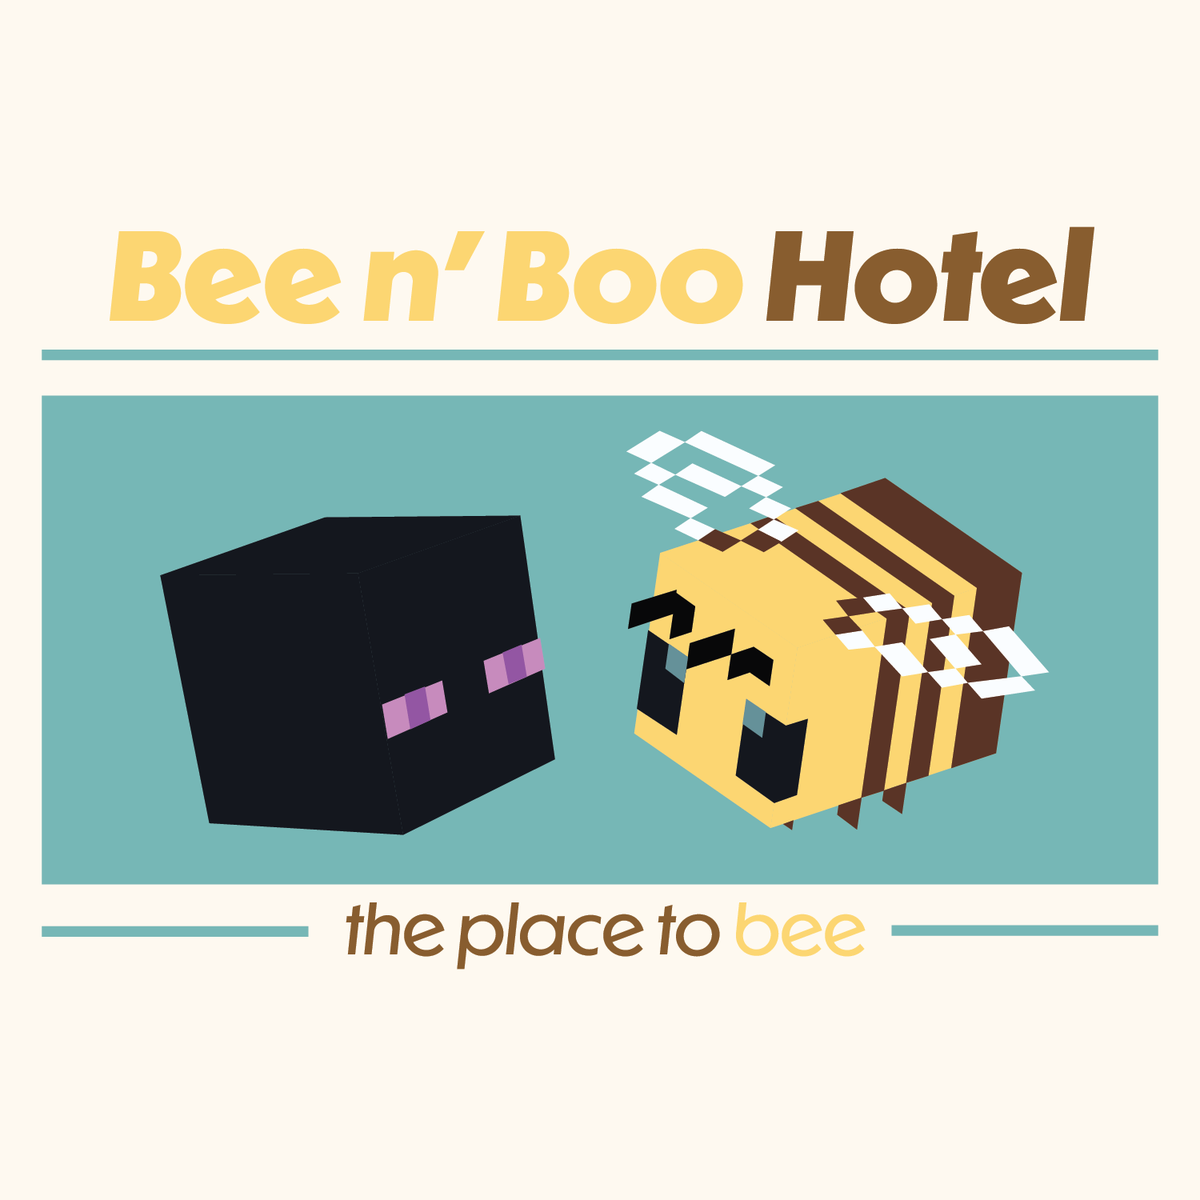 Bee n' Boo Hotel Logo!! one with transparency and one without! #beenboo #beenboologo #tubbofanart (rts okay!)